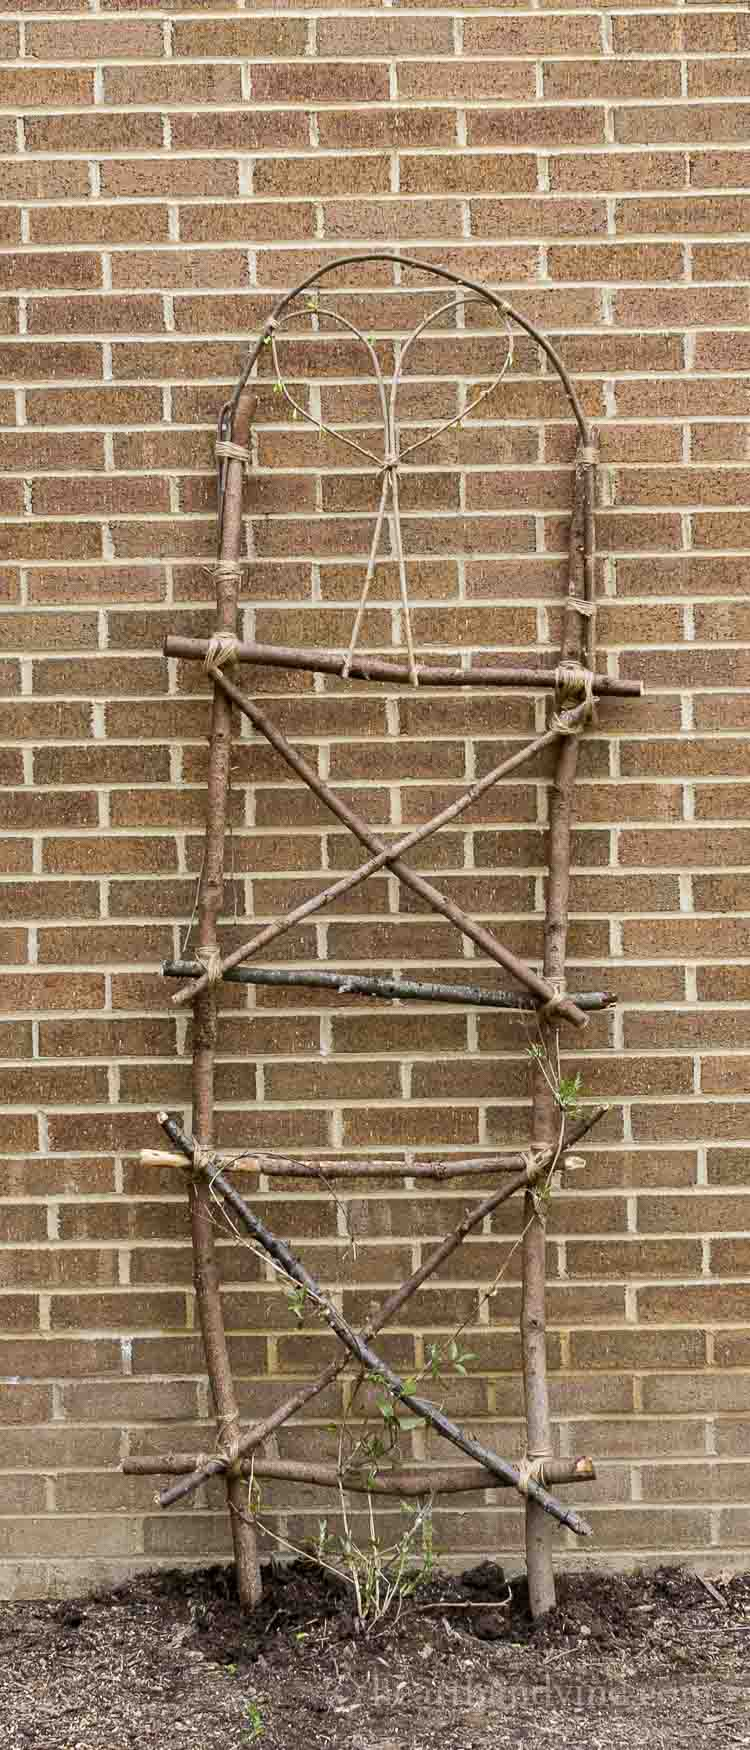 Make your own garden trellis from extra branches and twigs.